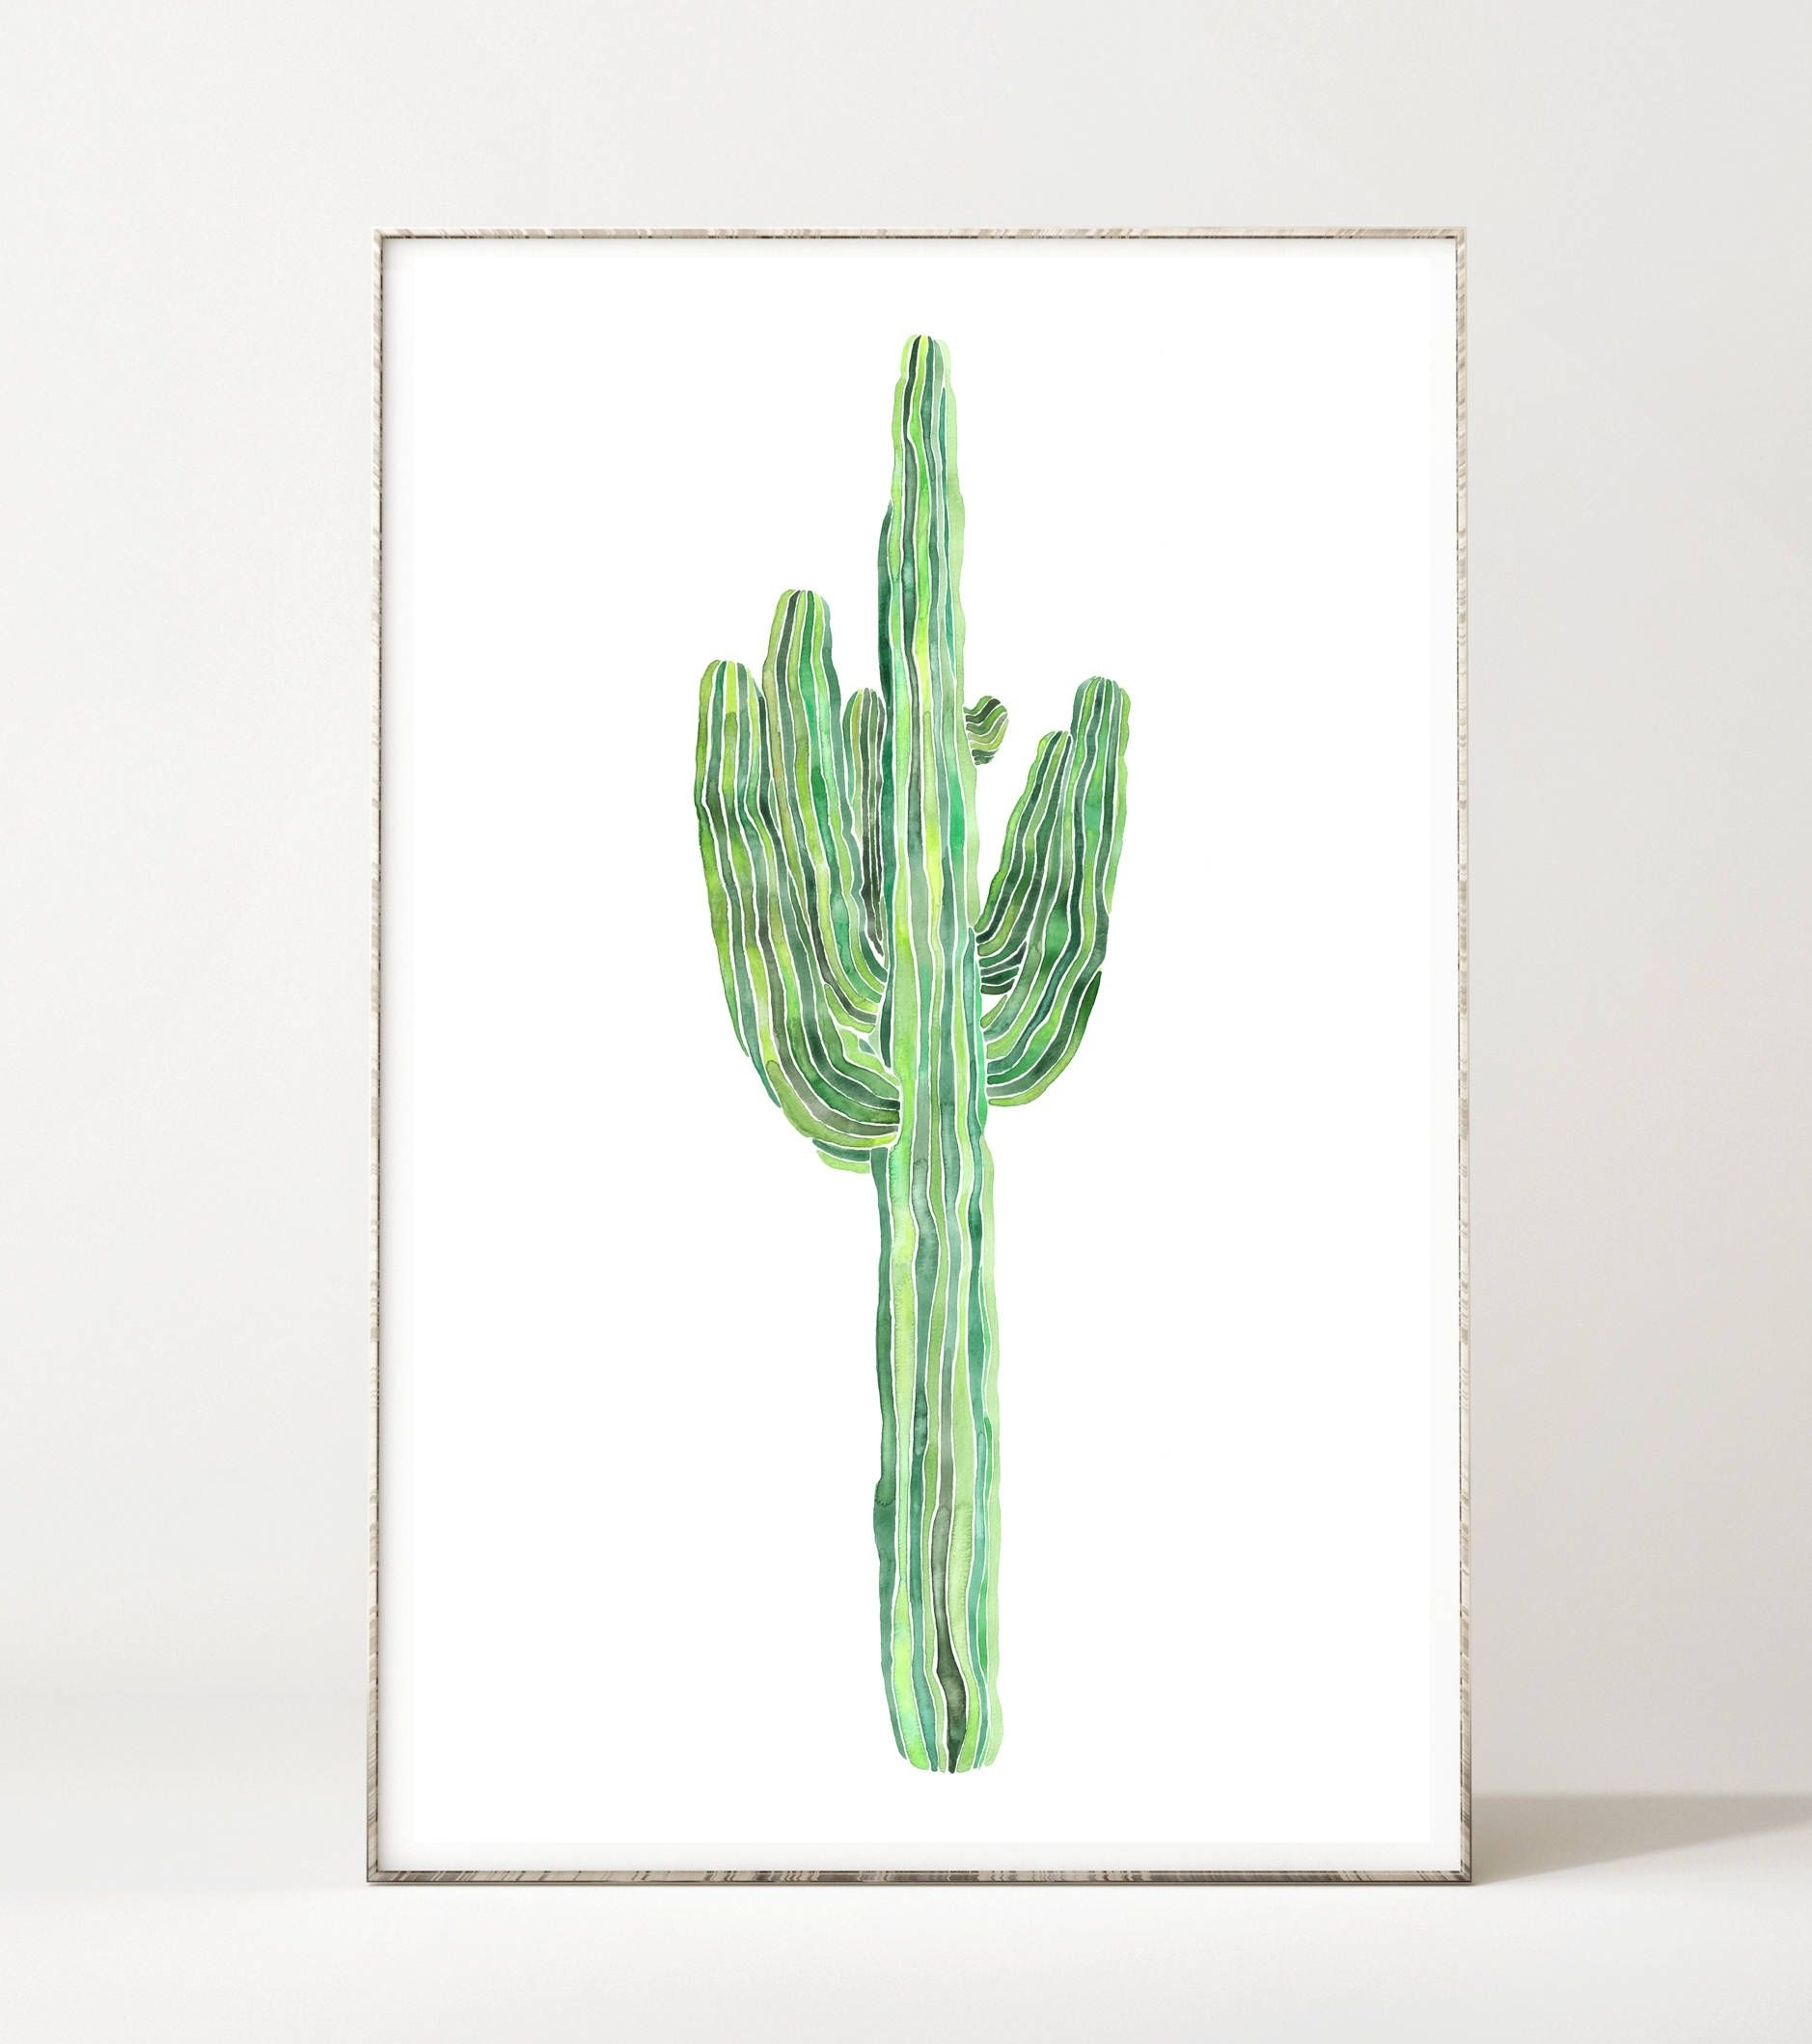 Cacti Print, Cactus Wall Art, Saguaro White Background, Minimalist Regarding 2018 Cactus Wall Art (View 6 of 20)